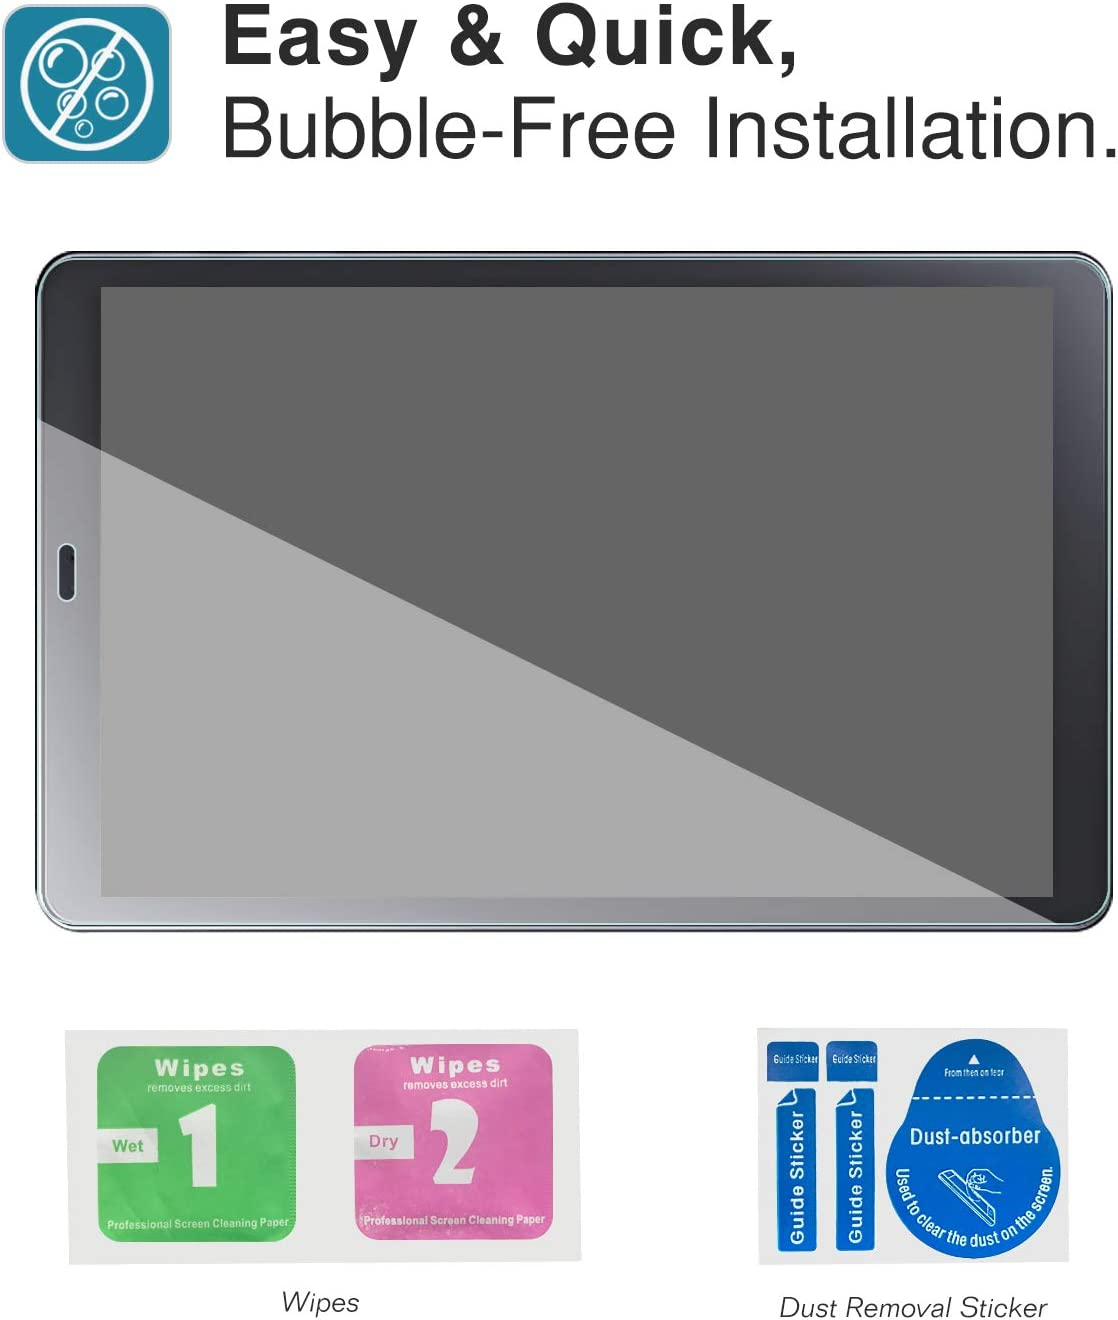 Scratch Terminator Ultra Clear Hardness Tempered Glass Screen Protector Anti-Scratch Film for Samsung Galaxy Tab A 10.5 Inch Tablet Clear MoKo Screen Protector for Samsung Galaxy Tab A 10.5